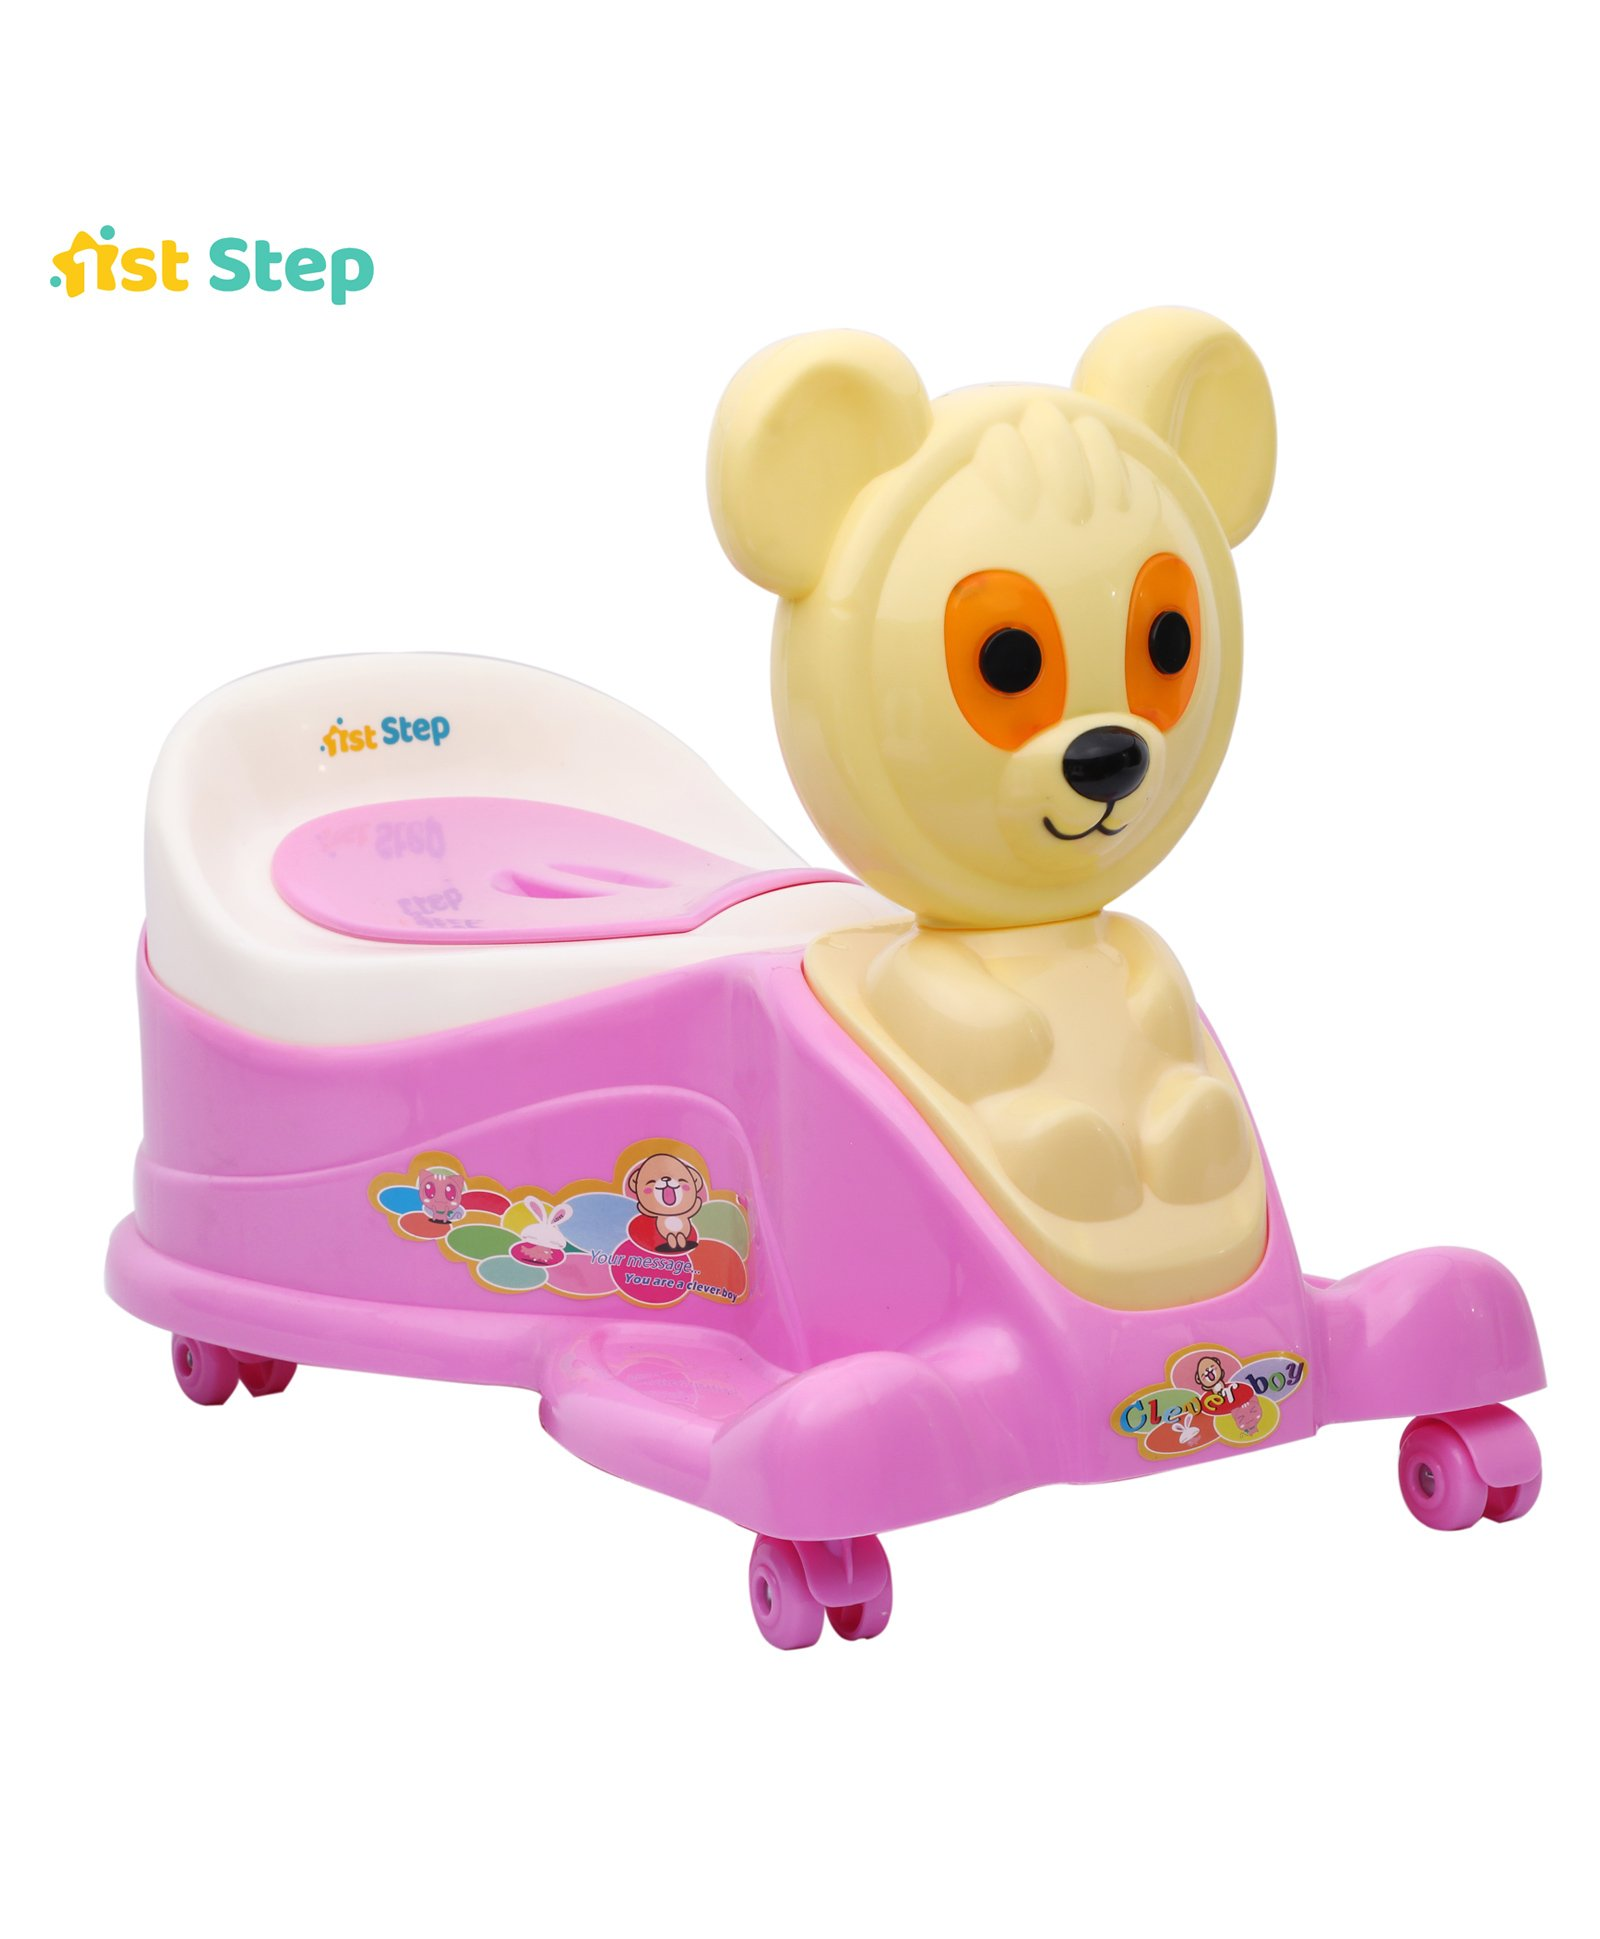 1st Step Pink Musical Potty Seat With Wheels - Animal Pattern